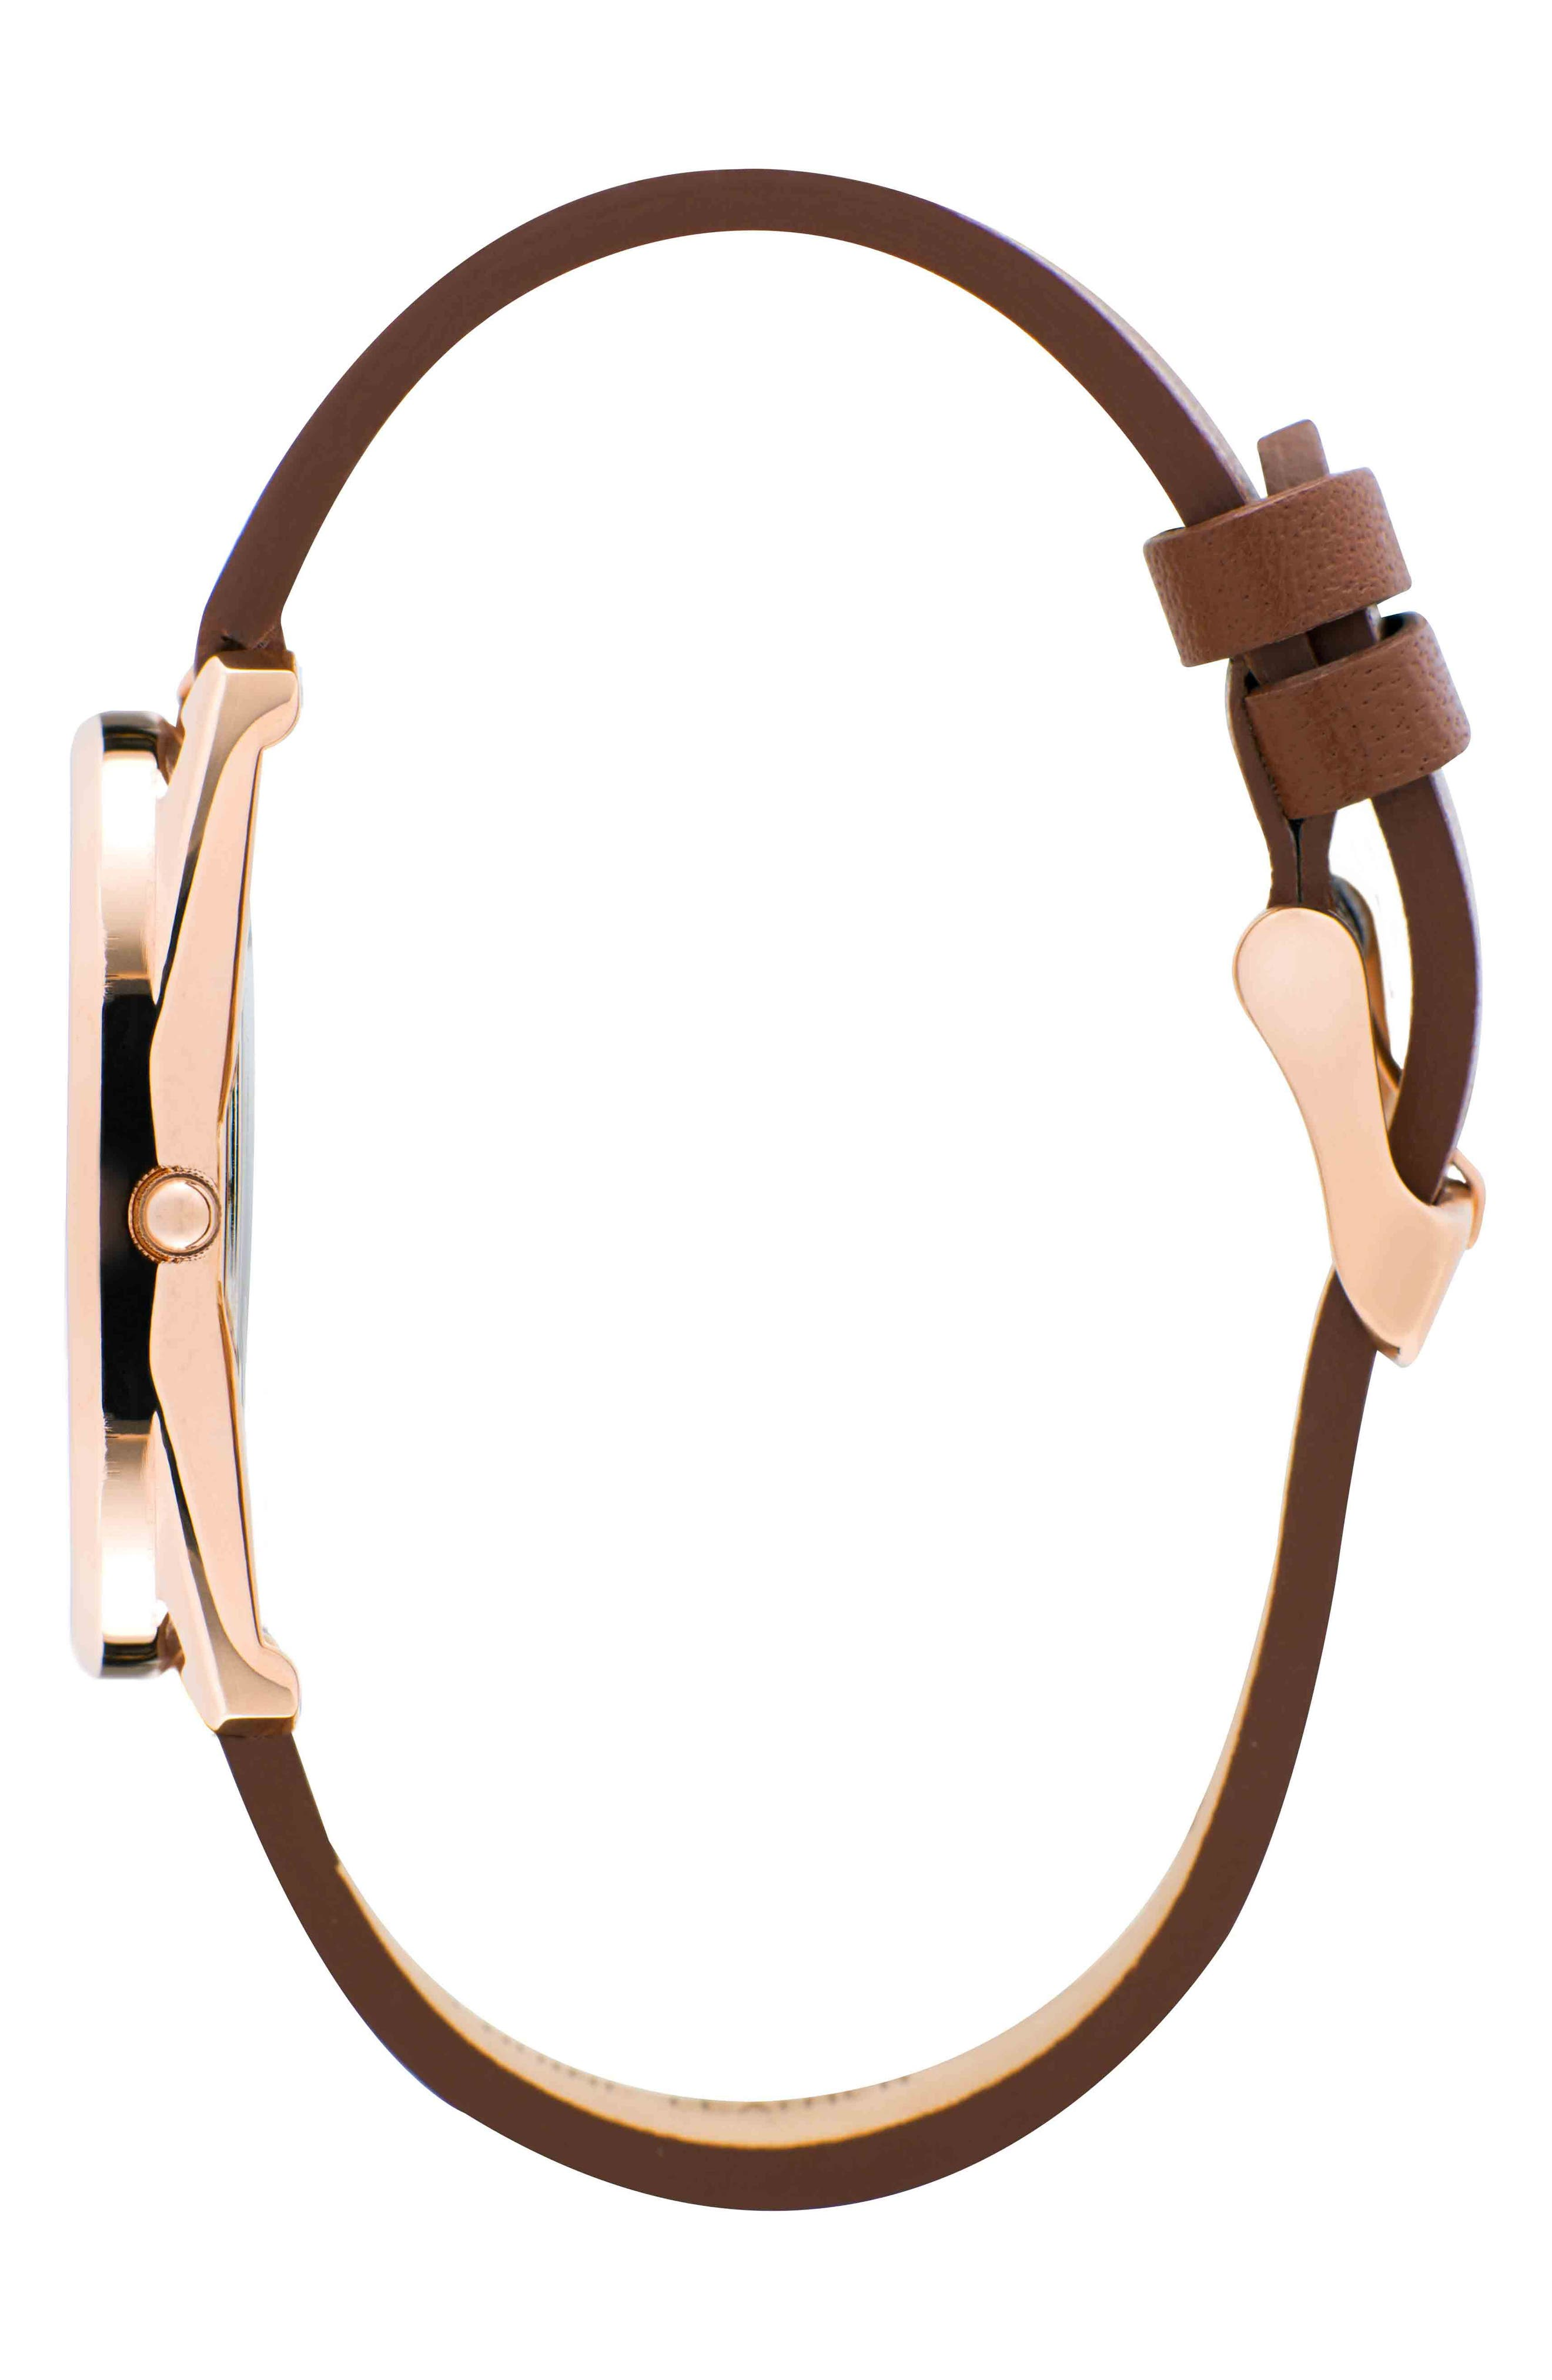 Leonard & Church Chelsea Leather Strap Watch, 34mm,                             Alternate thumbnail 2, color,                             Brown/ White/ Rose Gold